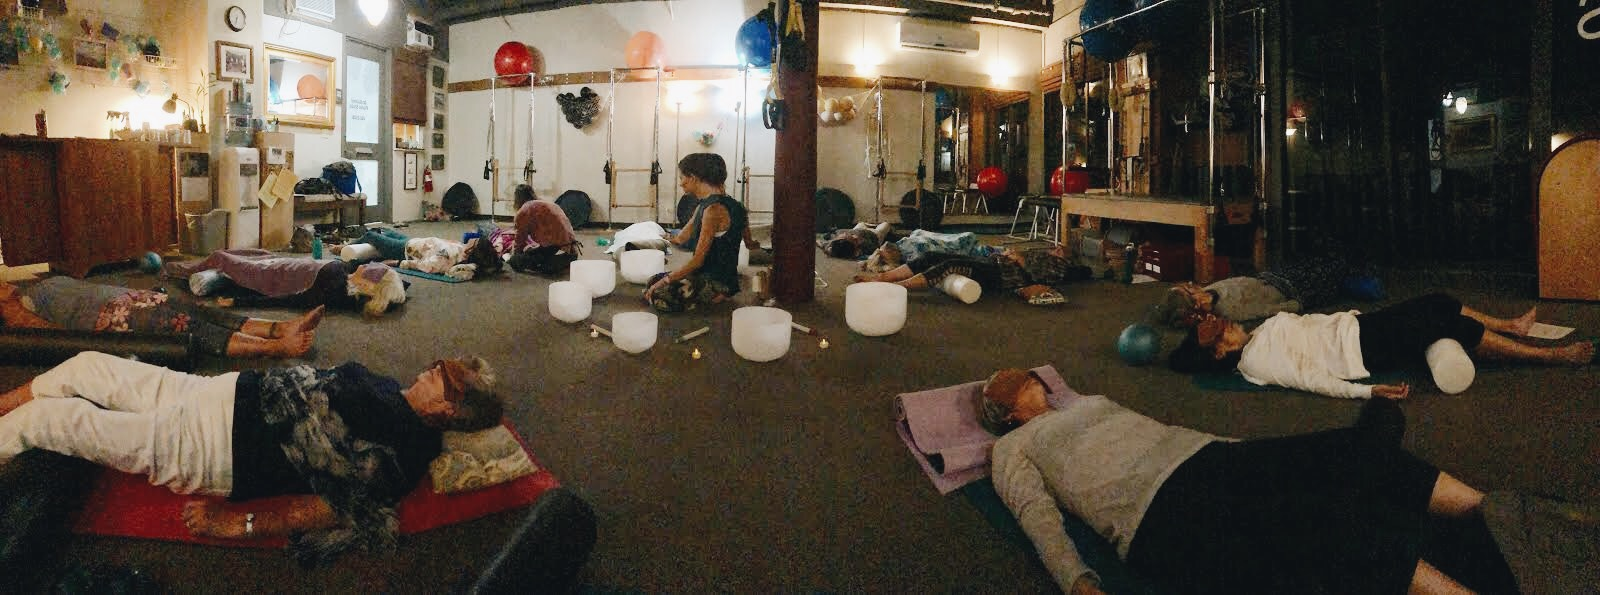 Students enjoy the benefits of acupuncture as they soak in a relaxing sound bath.